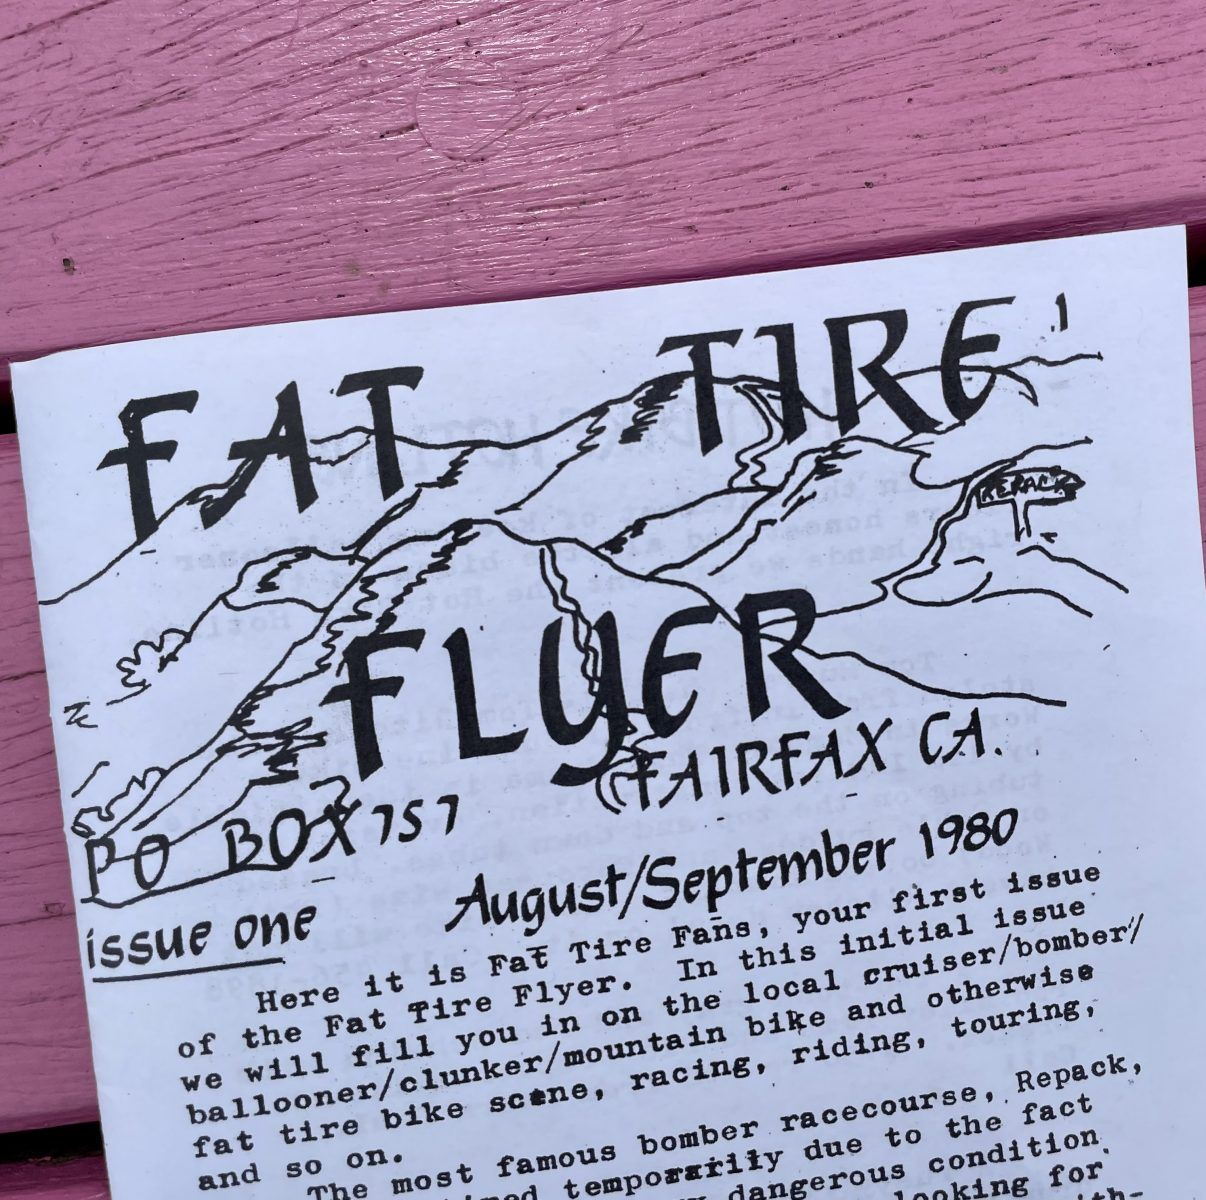 fat tire flyer issue 1